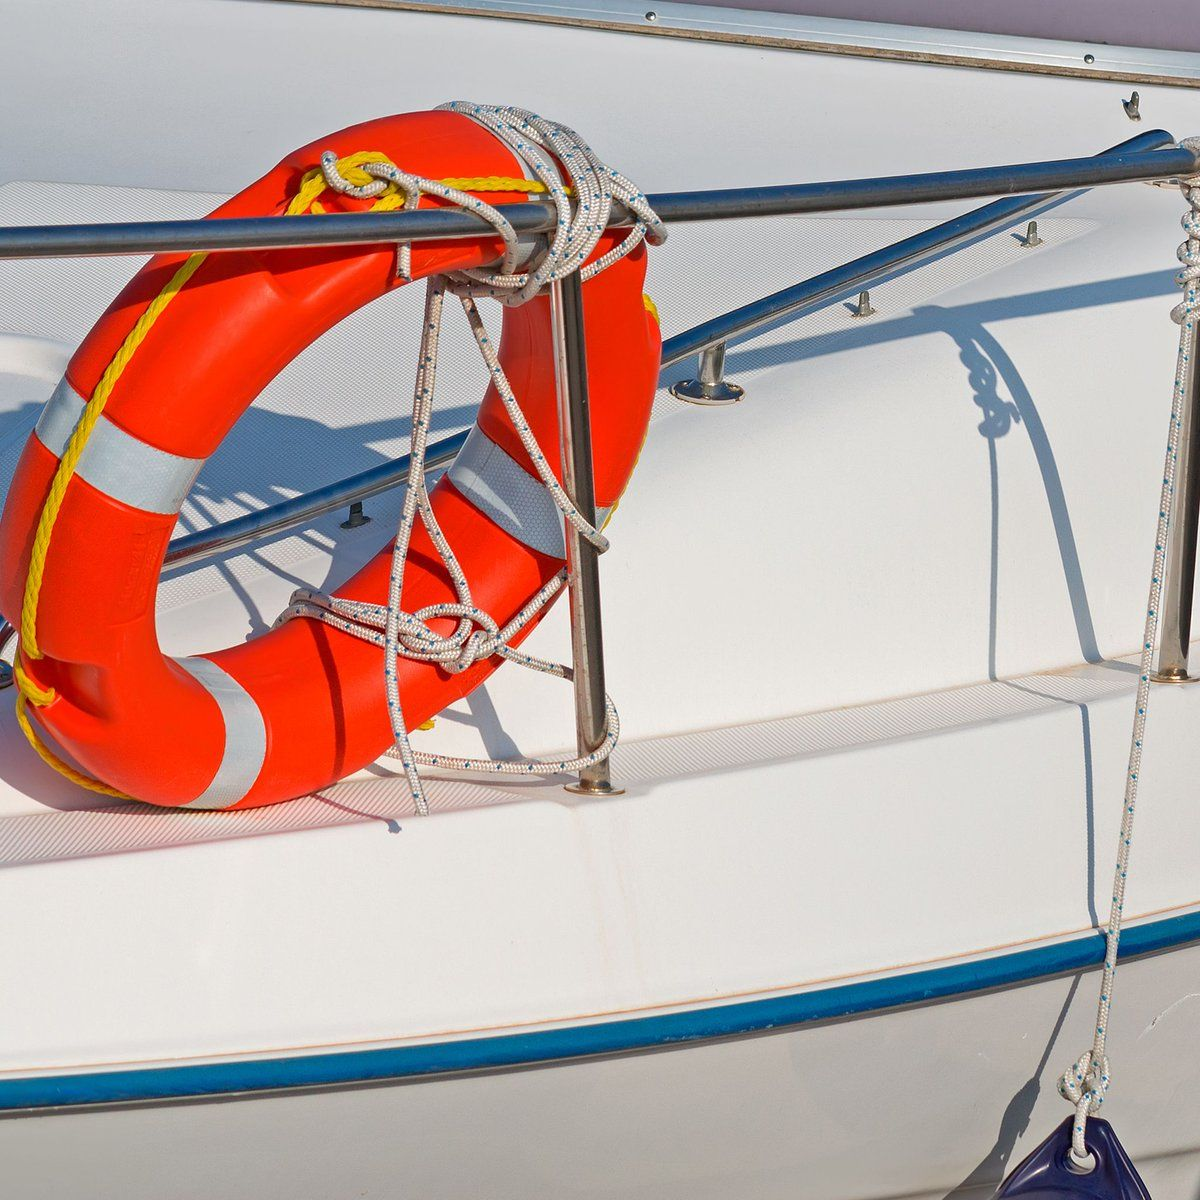 Boat_california did you know that most accidents on the